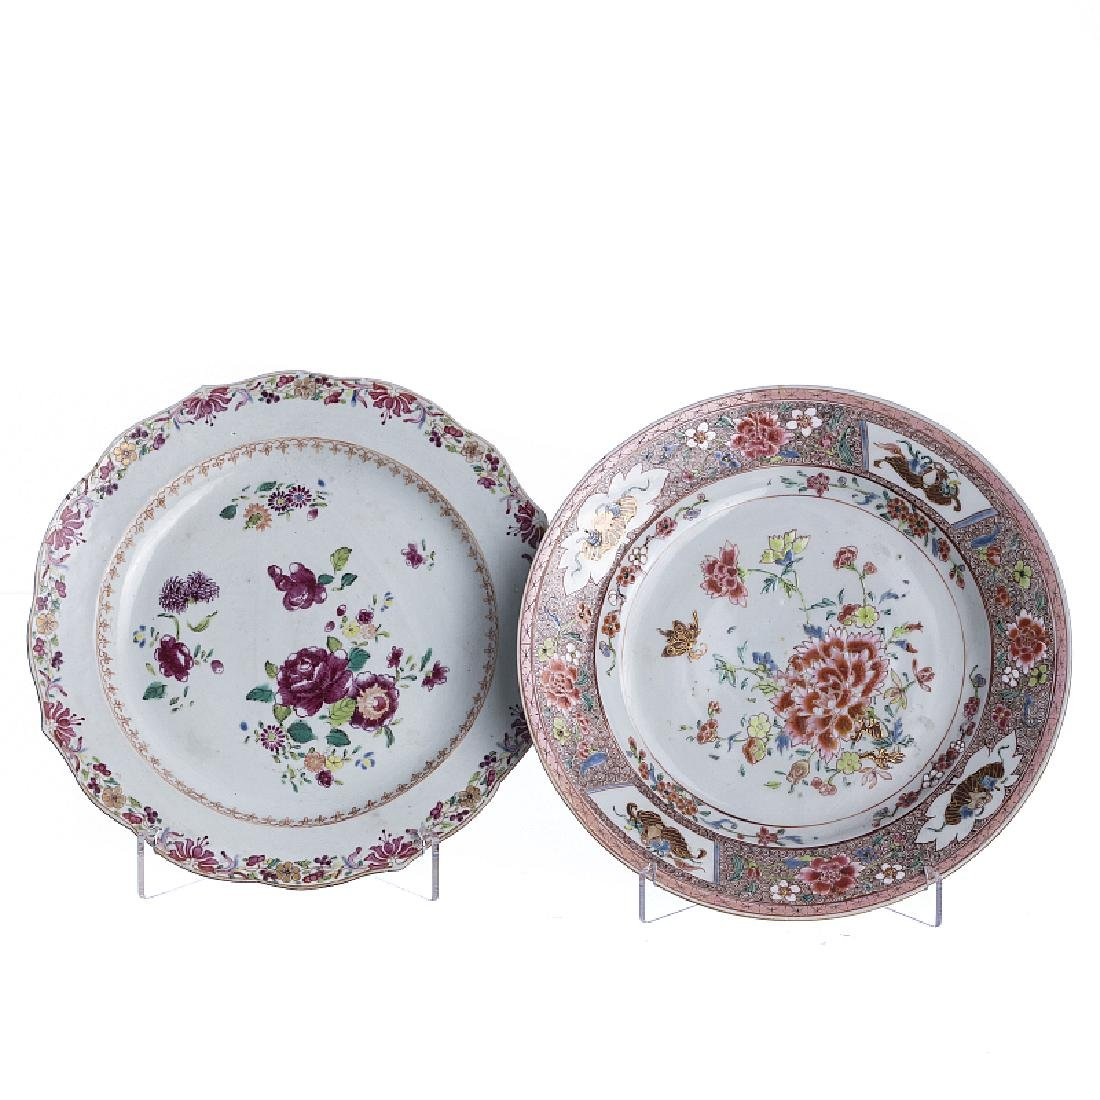 Two 'flowers' plates in chinese porcelain